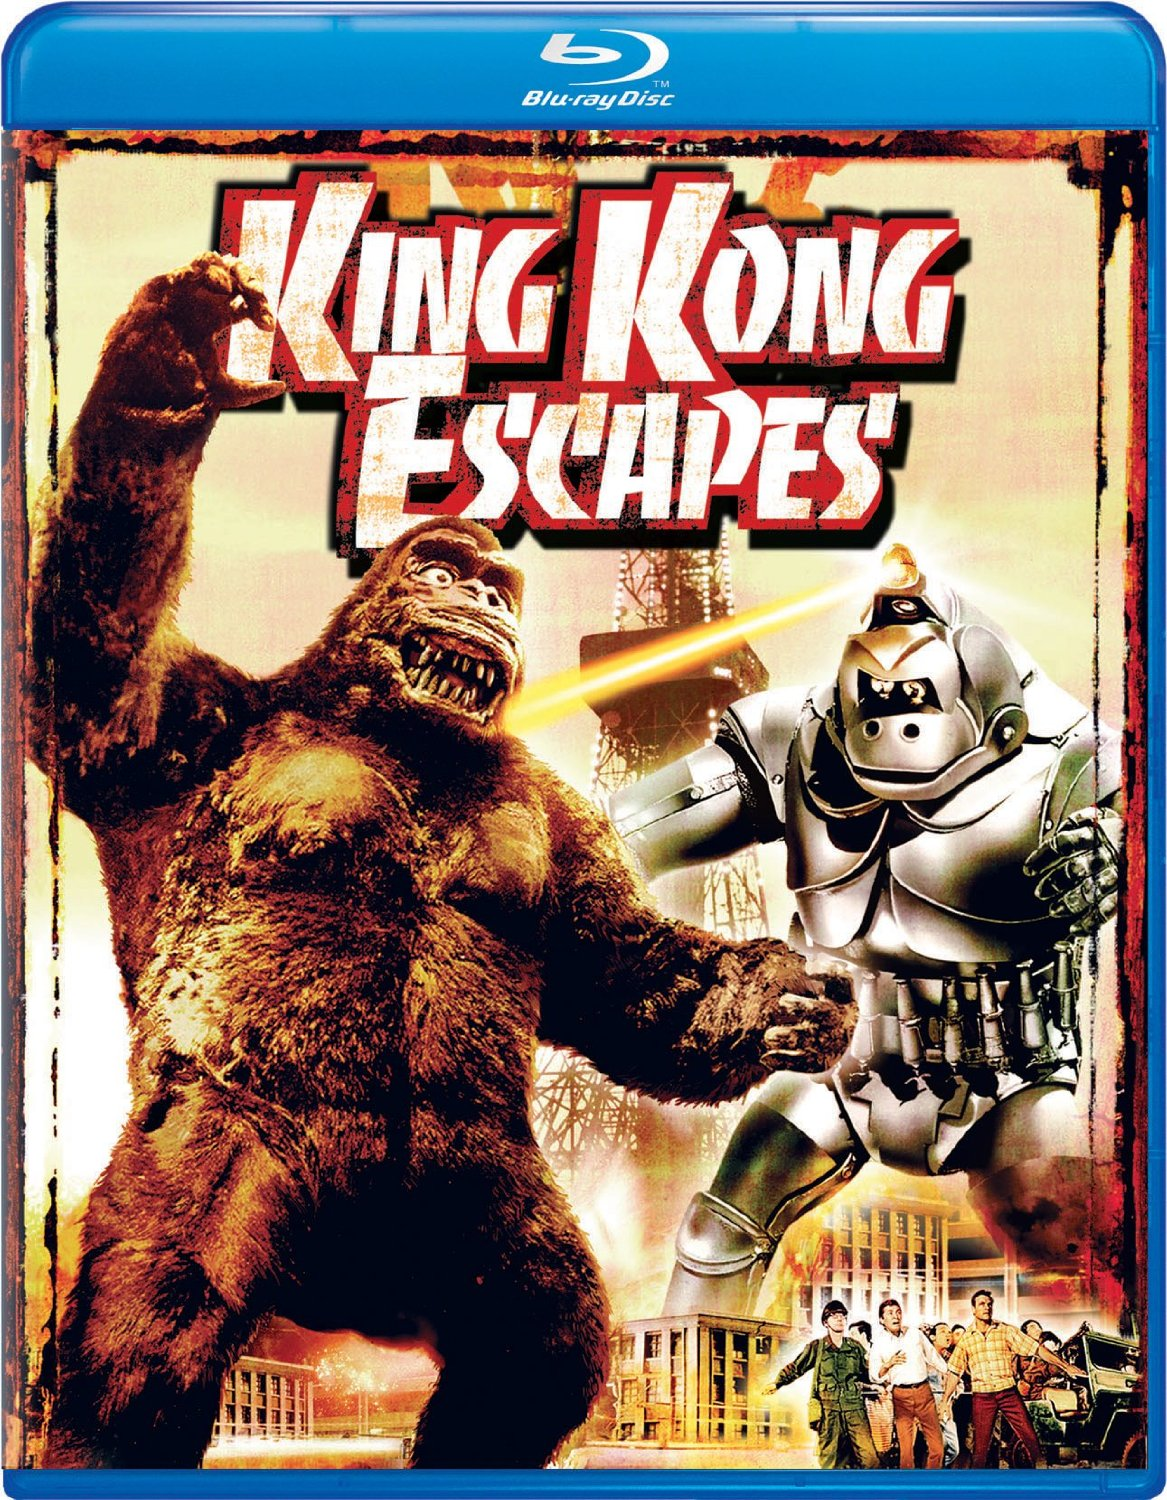 King Kong Escapes [Blu-ray Review] | The Metal Misfit